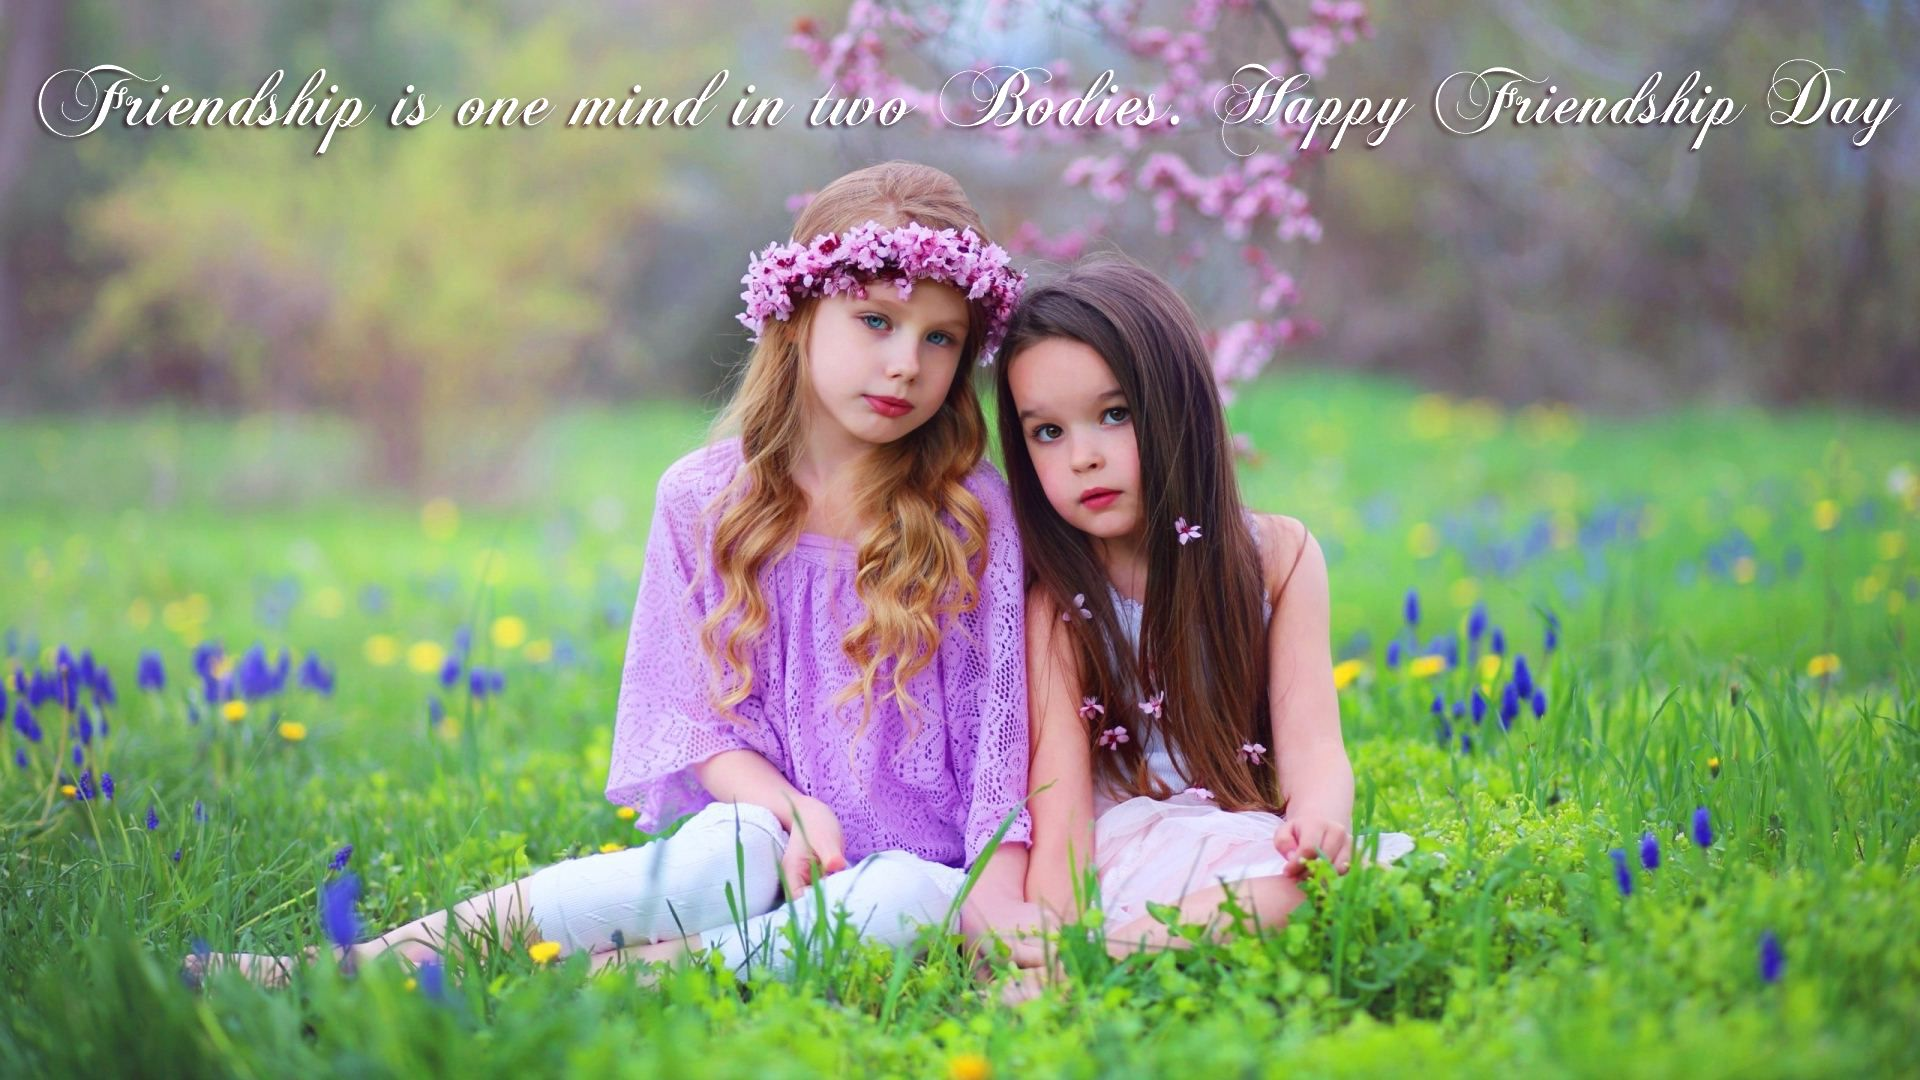 Cute Girls Friends Forever HD Wallpaper Happy Friendship Day Best Friend Wallpapers Images Pictures Greetings Quotes